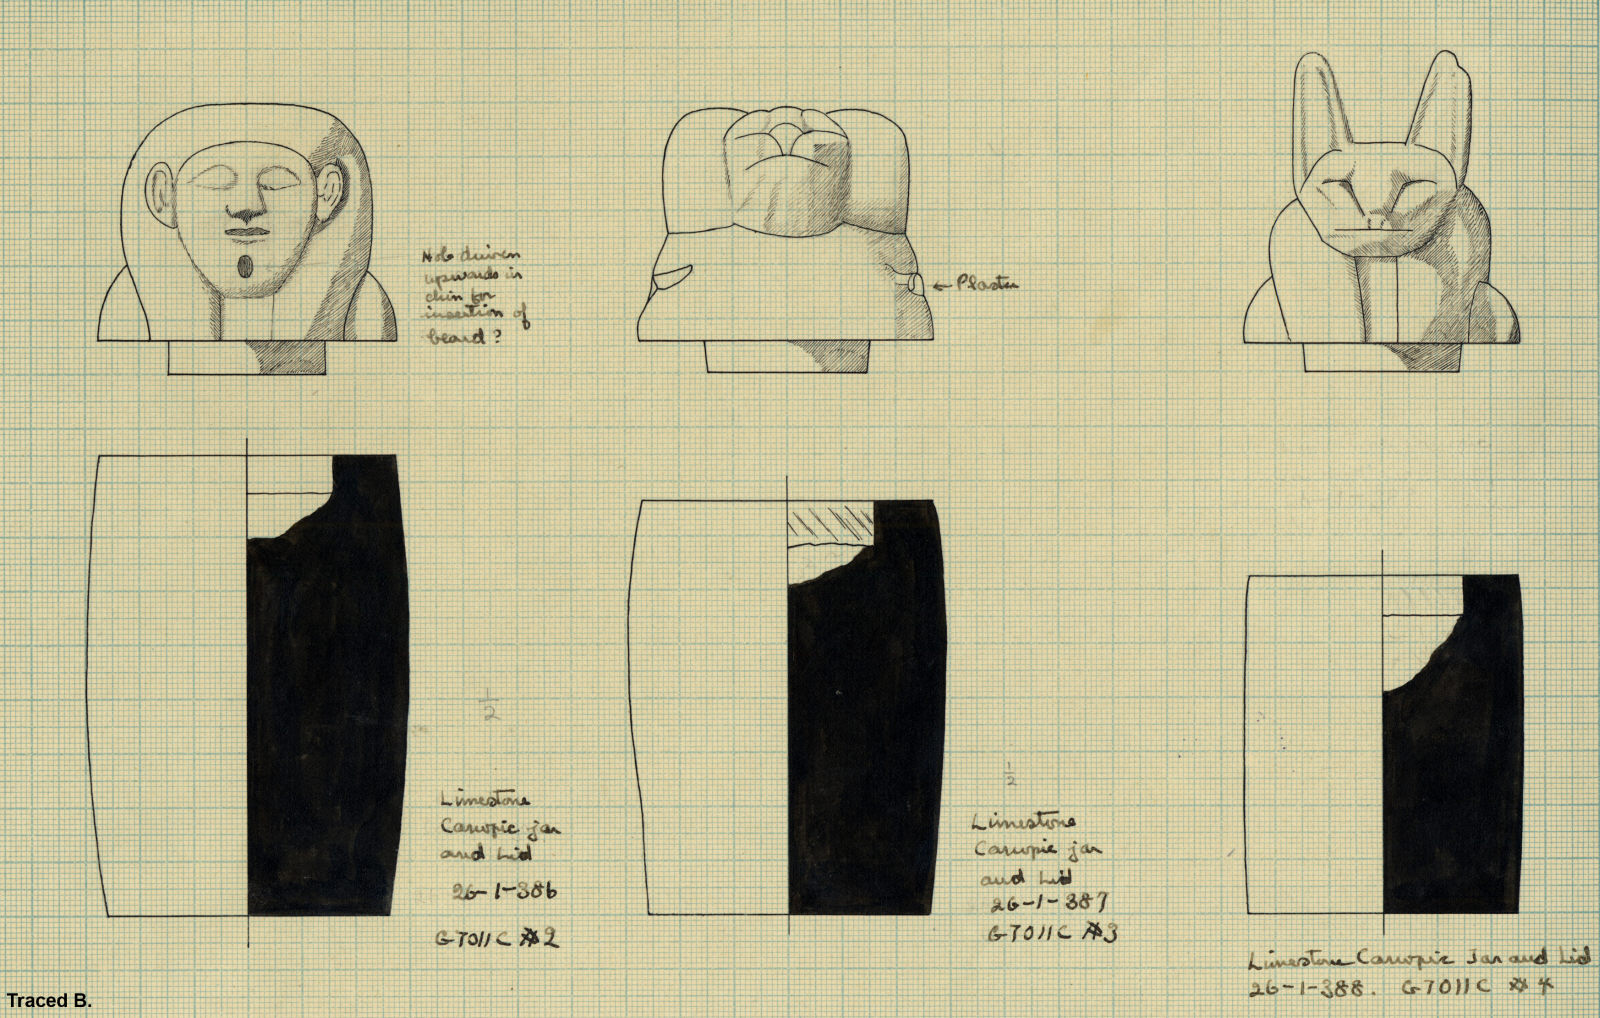 Drawings: G 7011, Shaft C: canopic jars and lids, limestone